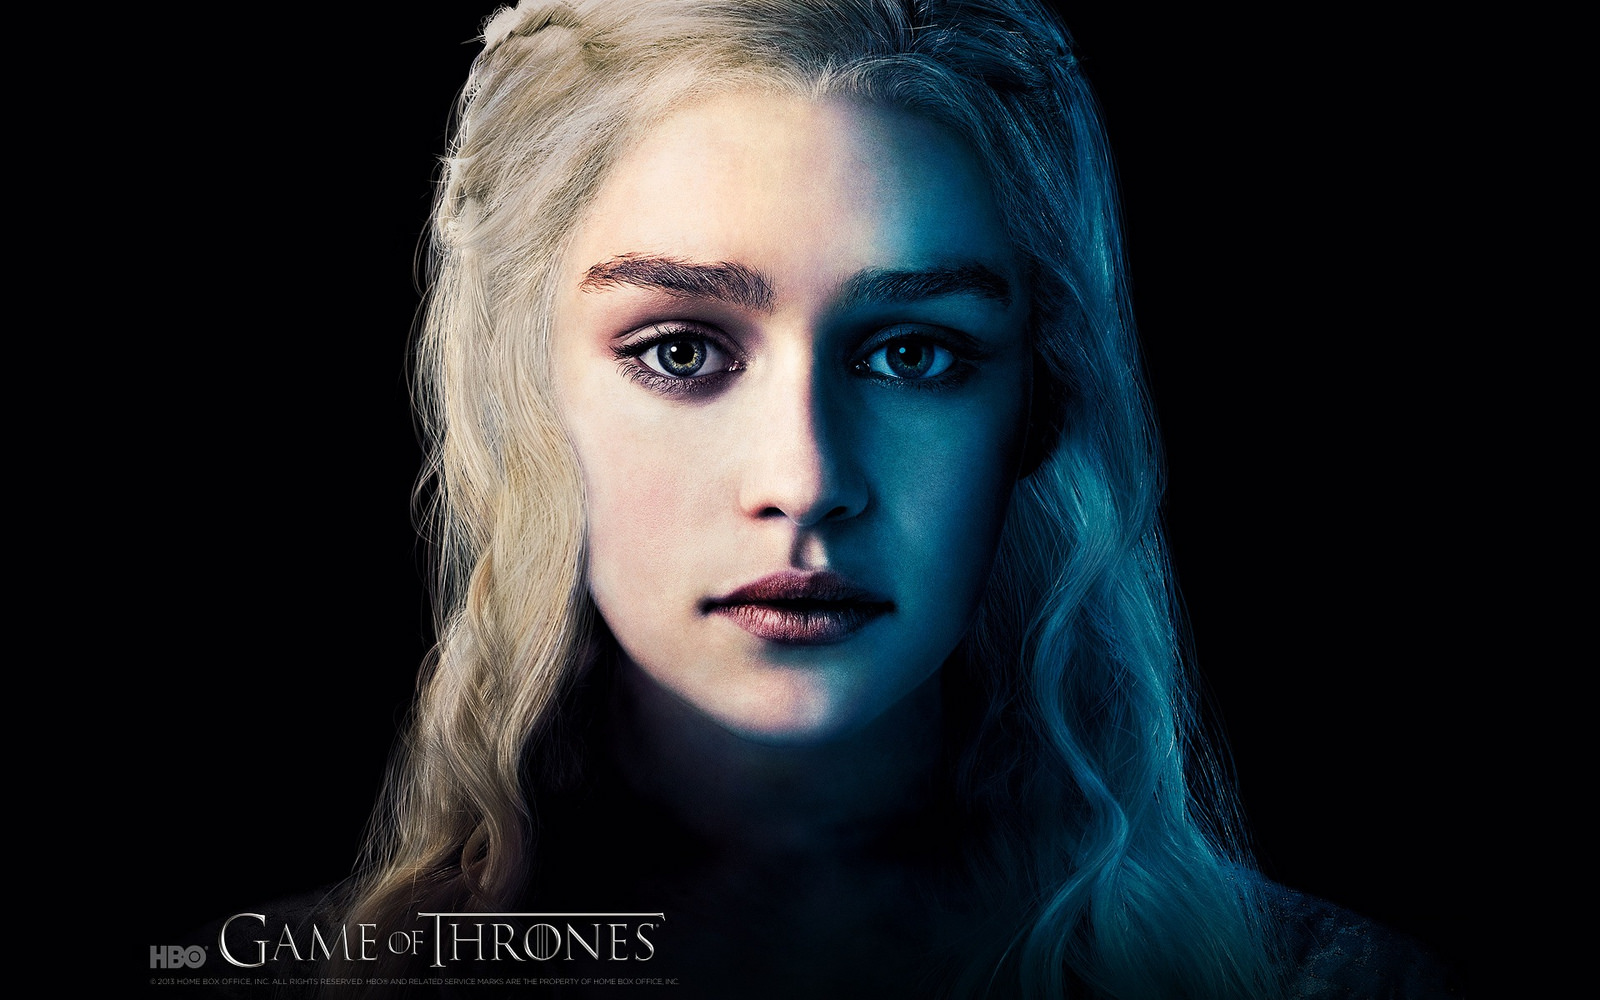 Game of Thrones in the Workplace - Daenerys Targaryen